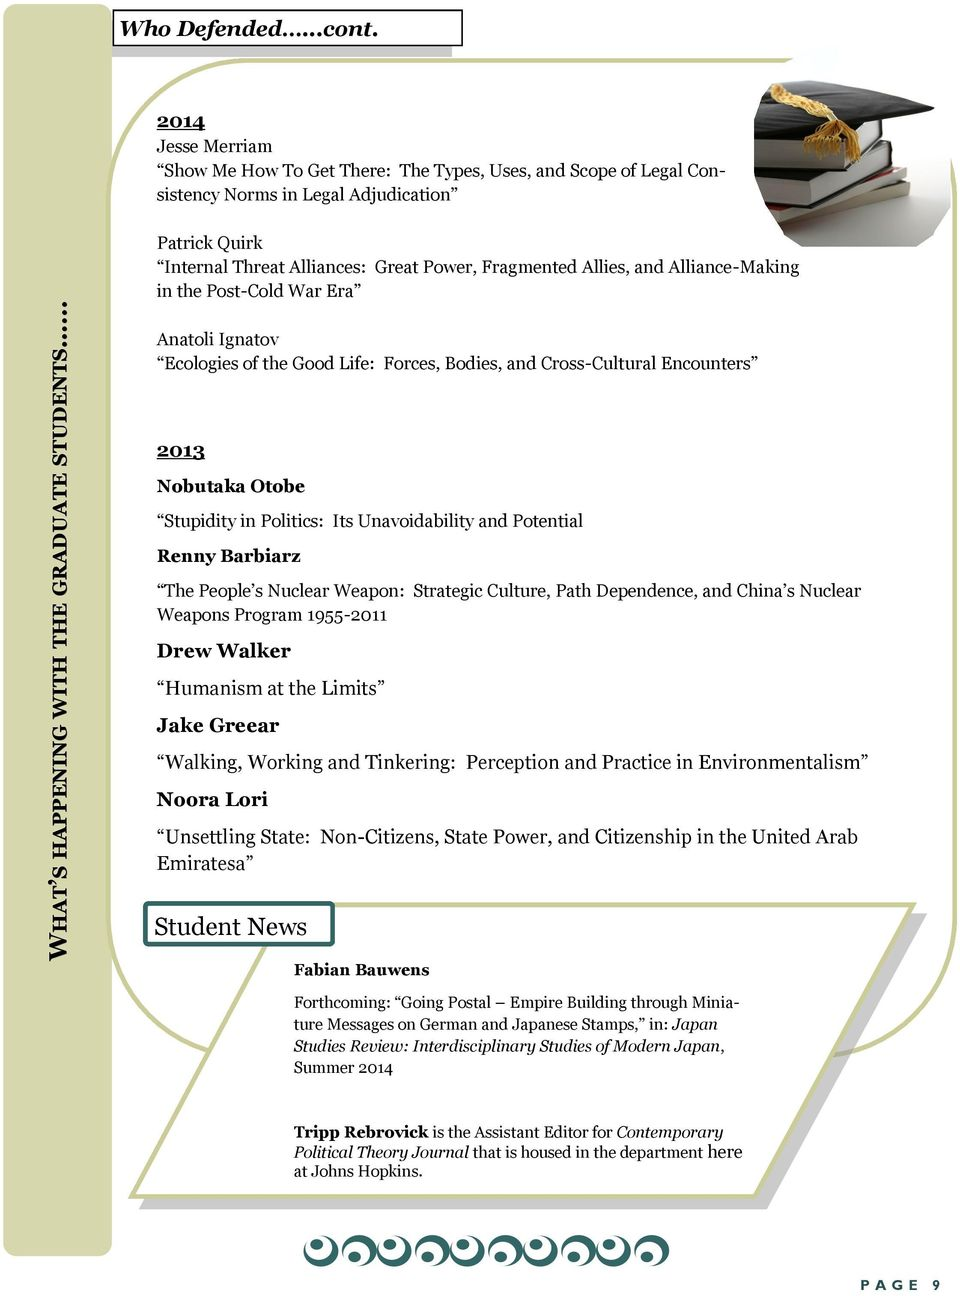 essay path dependence quarterly journal of political science Path dependency theory paul pierson's influential attempt to rigorously formalize path dependence within political science essay: path dependence, quarterly.